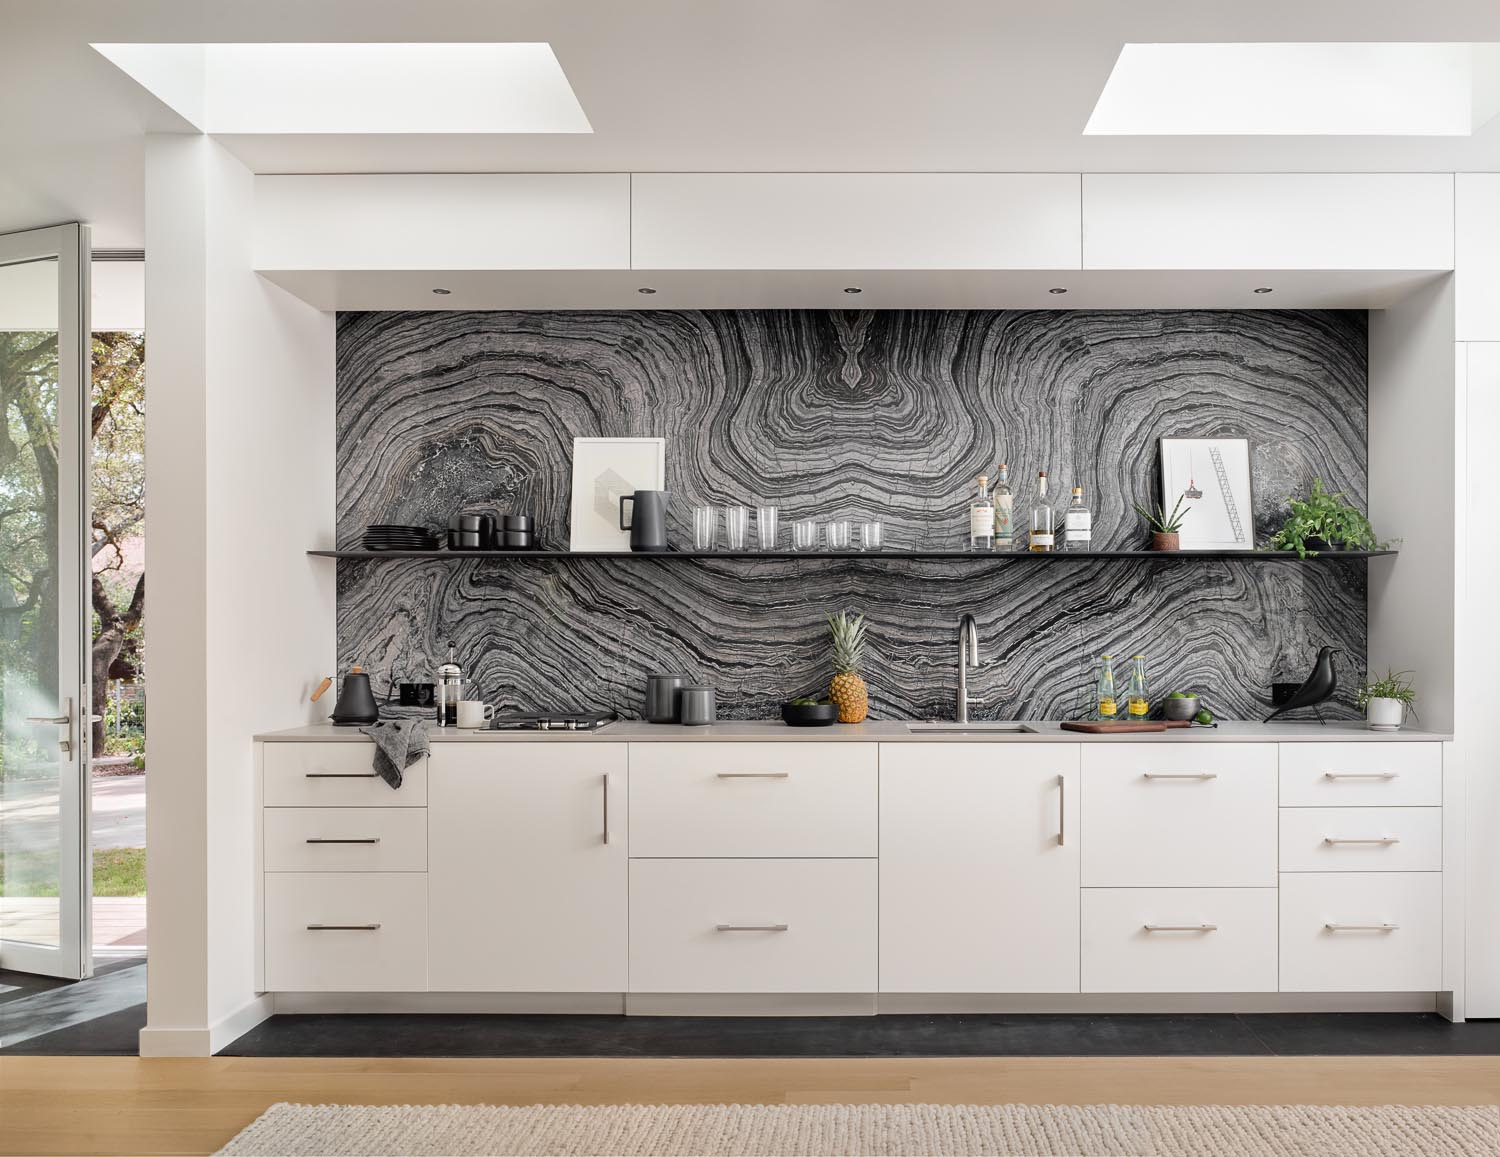 A modern small kitchen with white cabinets and a gray stone backsplash with a minimalist black shelf. Two skylights help to keep the kitchen bright.